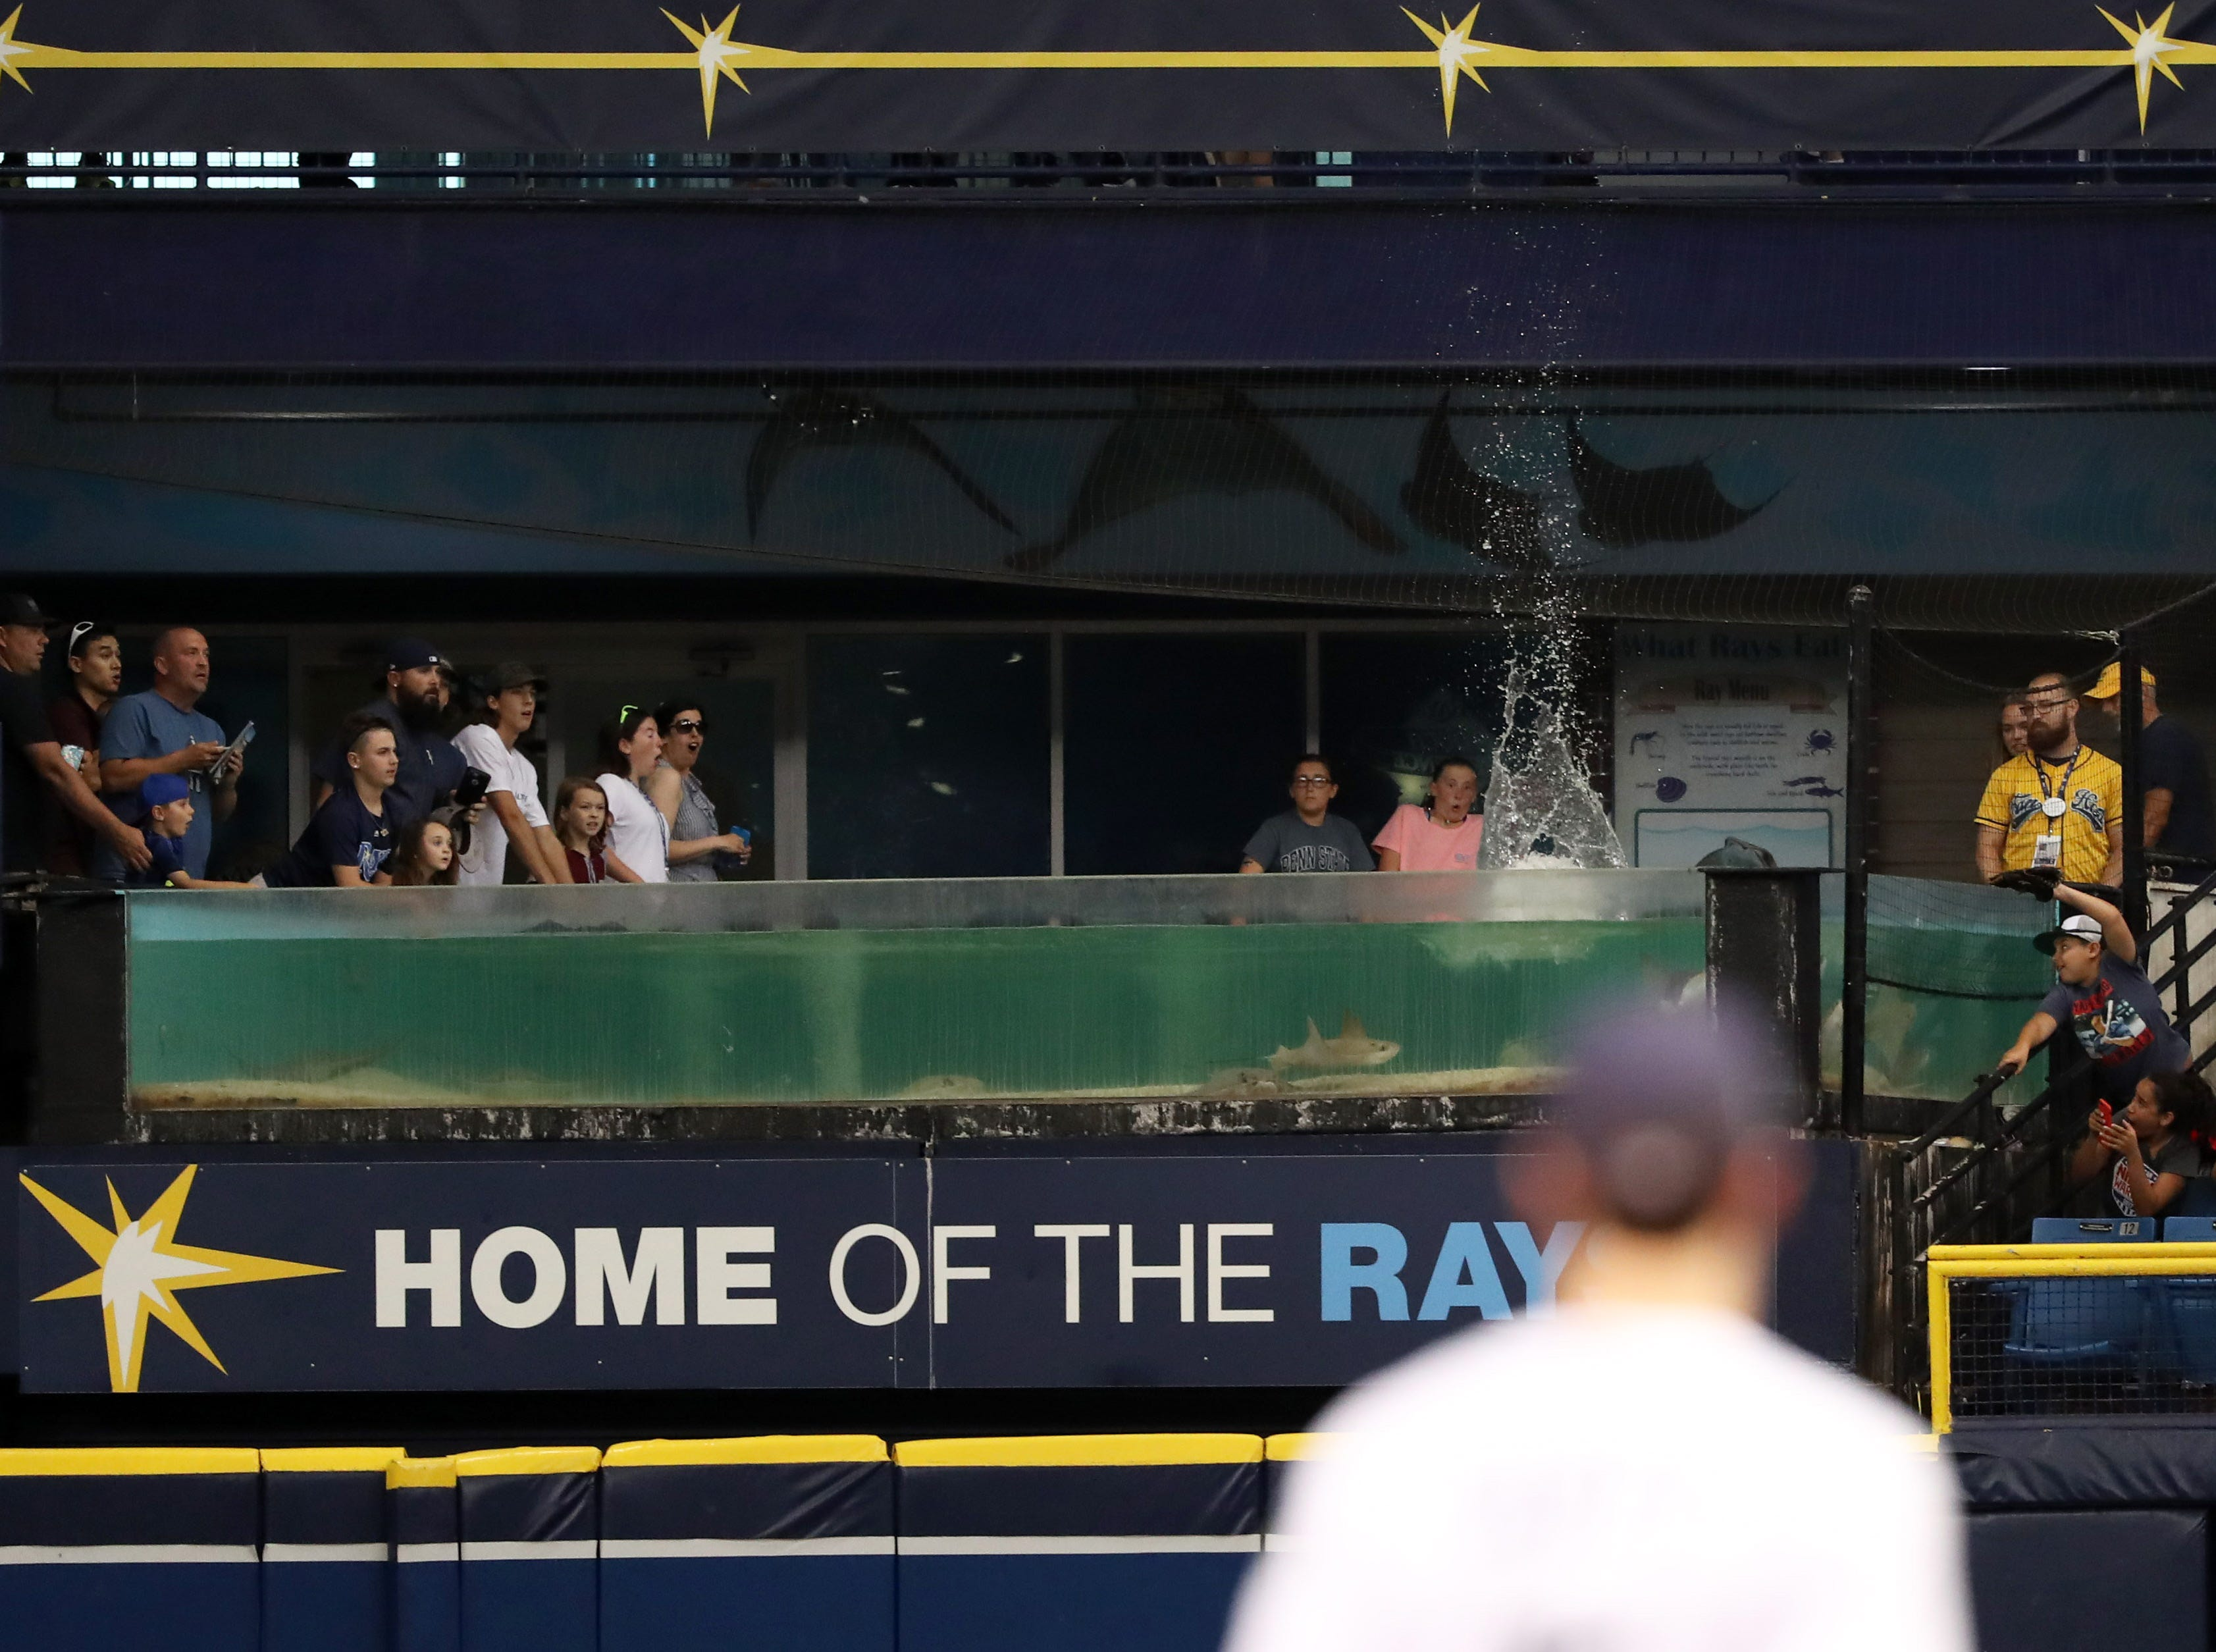 Aug. 1: Los Angeles Angels right fielder Kole Calhoun hits the ball into the Rays fish tank for a home run during the first inning against the Tampa Bay Rays.